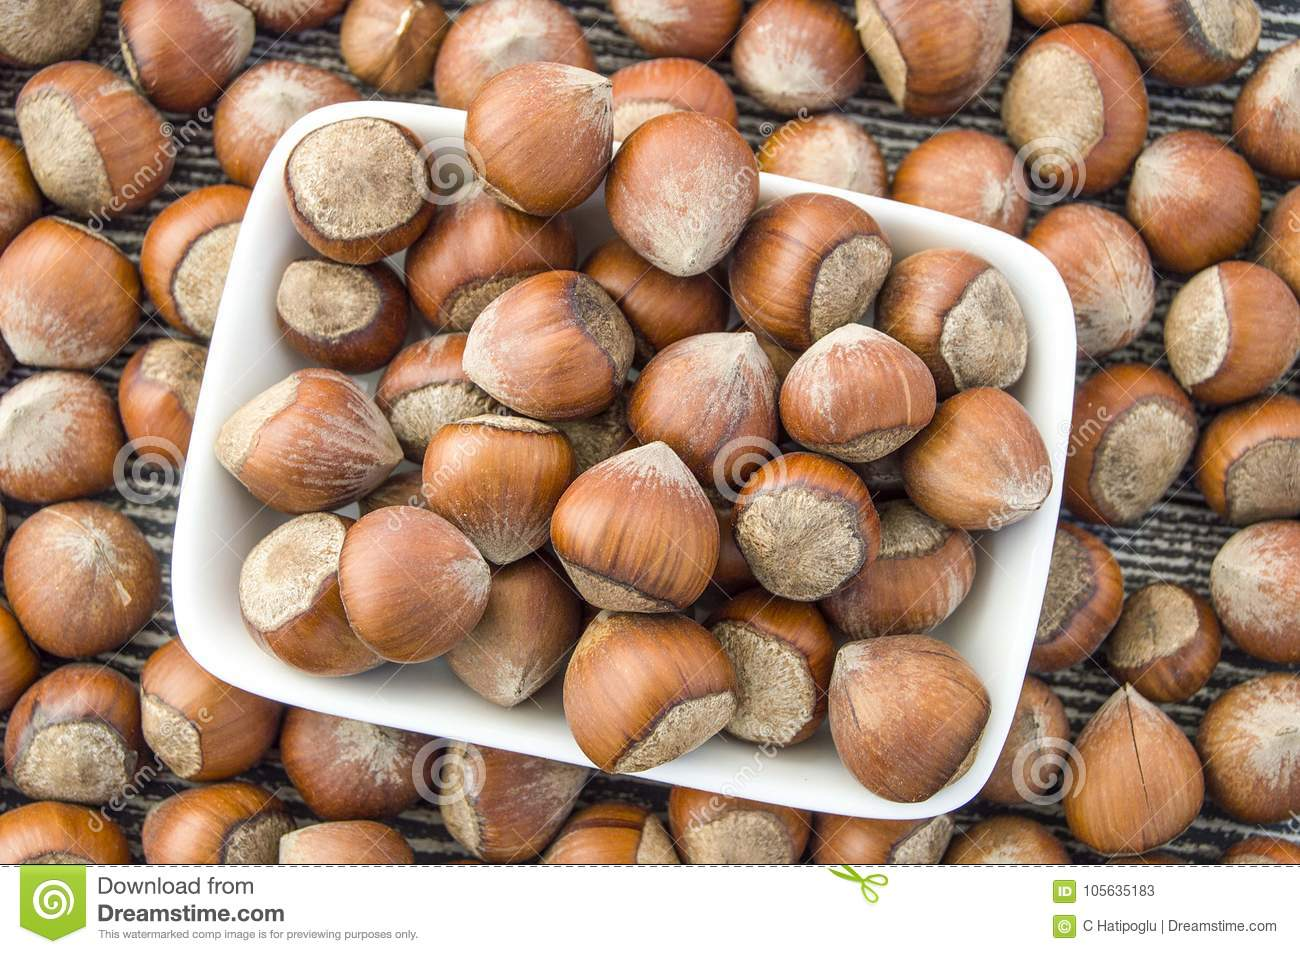 Shell Hazelnut Pictures, Hazelnut Pictures From Turkey, Dry Shelled Hazelnuts Pictures, Turkey Nuts Pictures, Stock Image